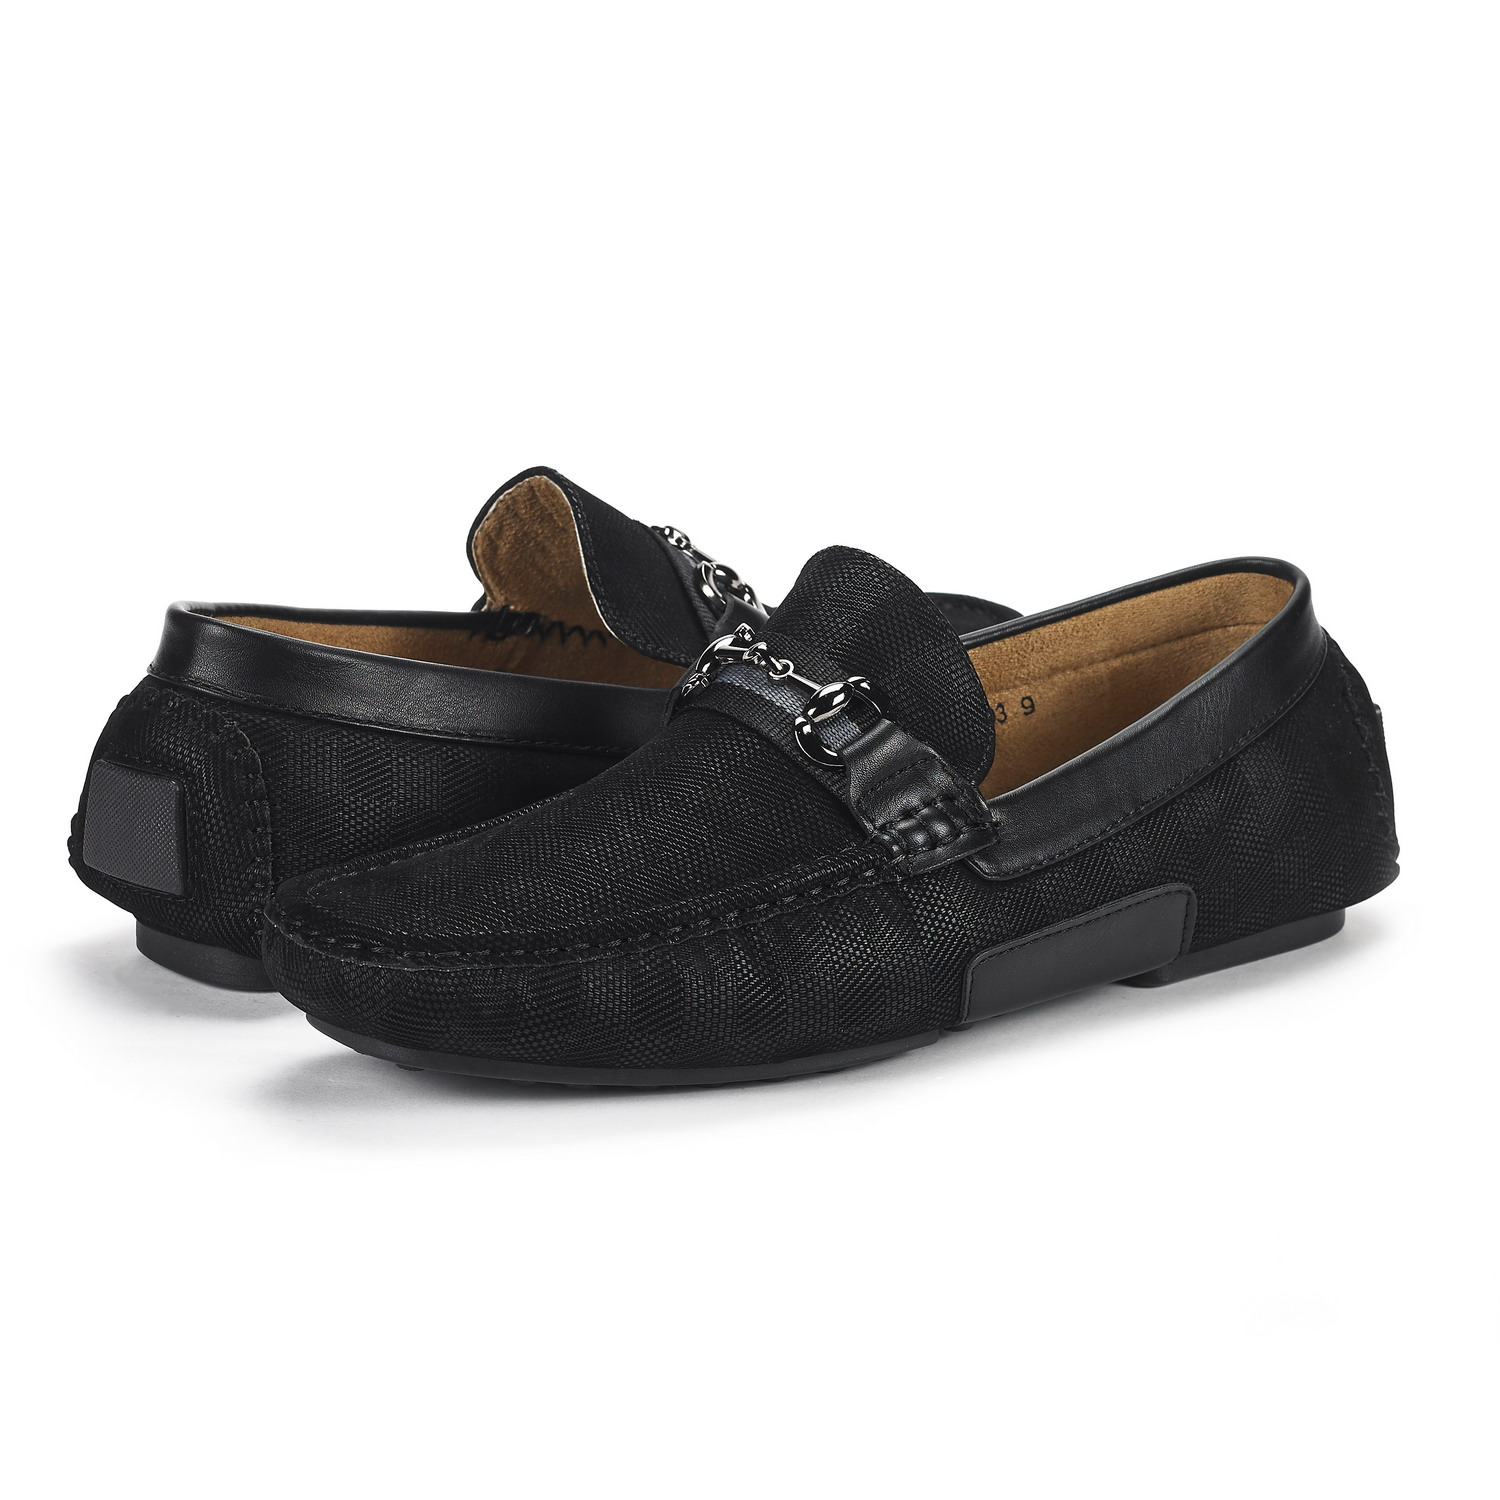 Bruno-Marc-Mens-Casual-Driving-Antiskid-Loafers-Leather-Slip-On-Moccasins-Shoes thumbnail 9